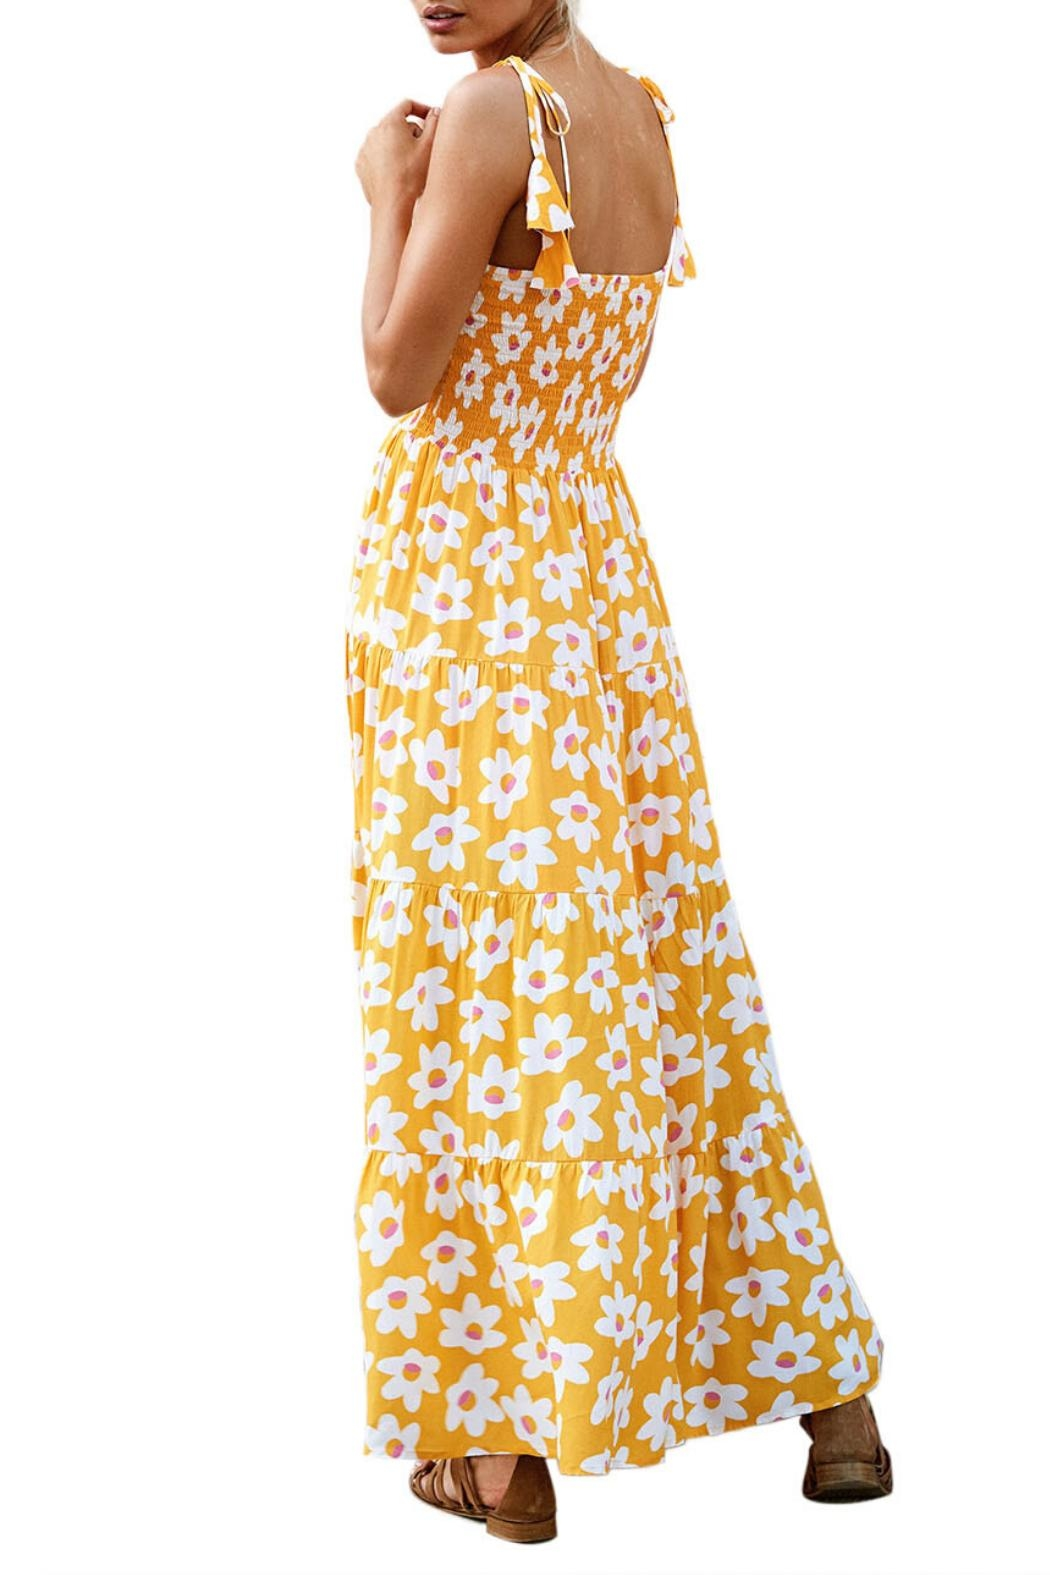 Unbranded Yellow Flower Maxi - Front Full Image